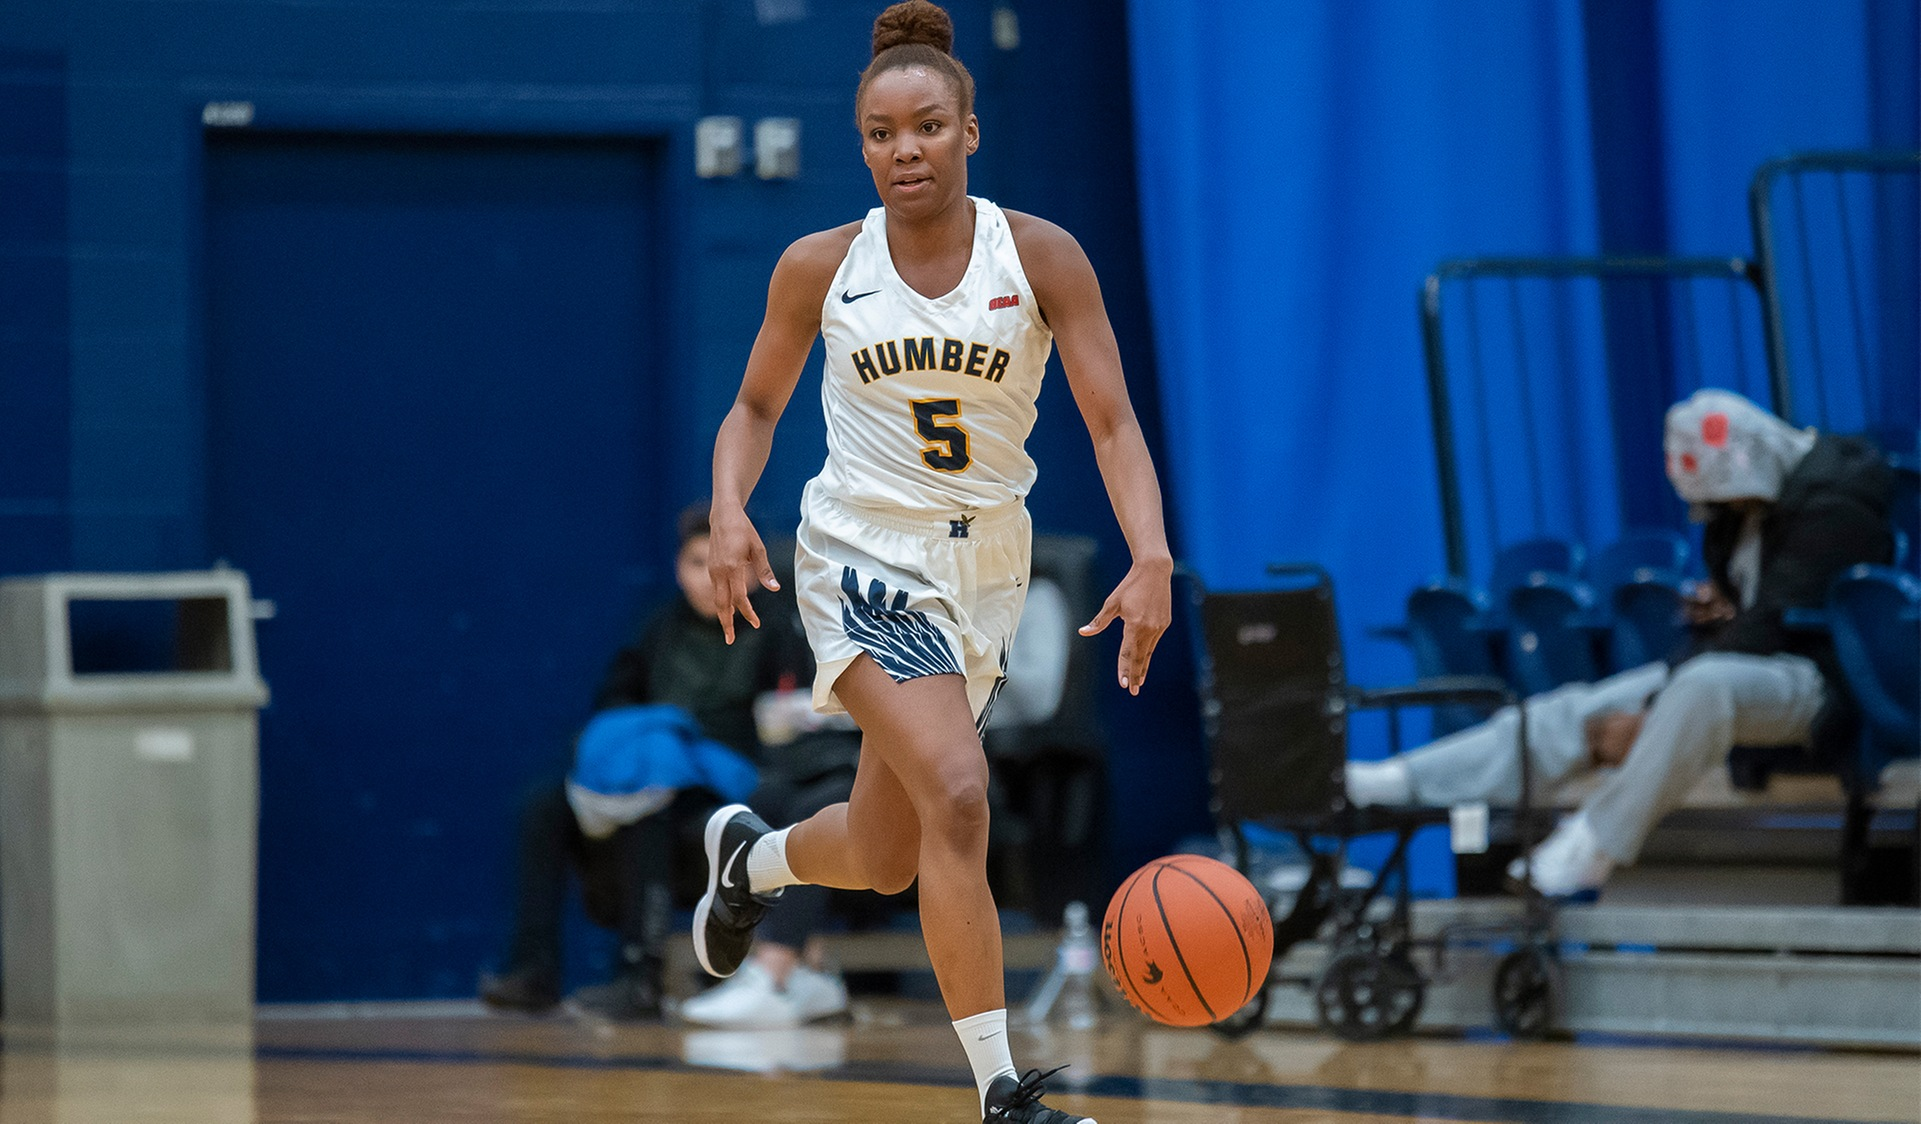 No. 11 WOMEN'S BASKETBALL SET TO FACE UTM WEDNESDAY